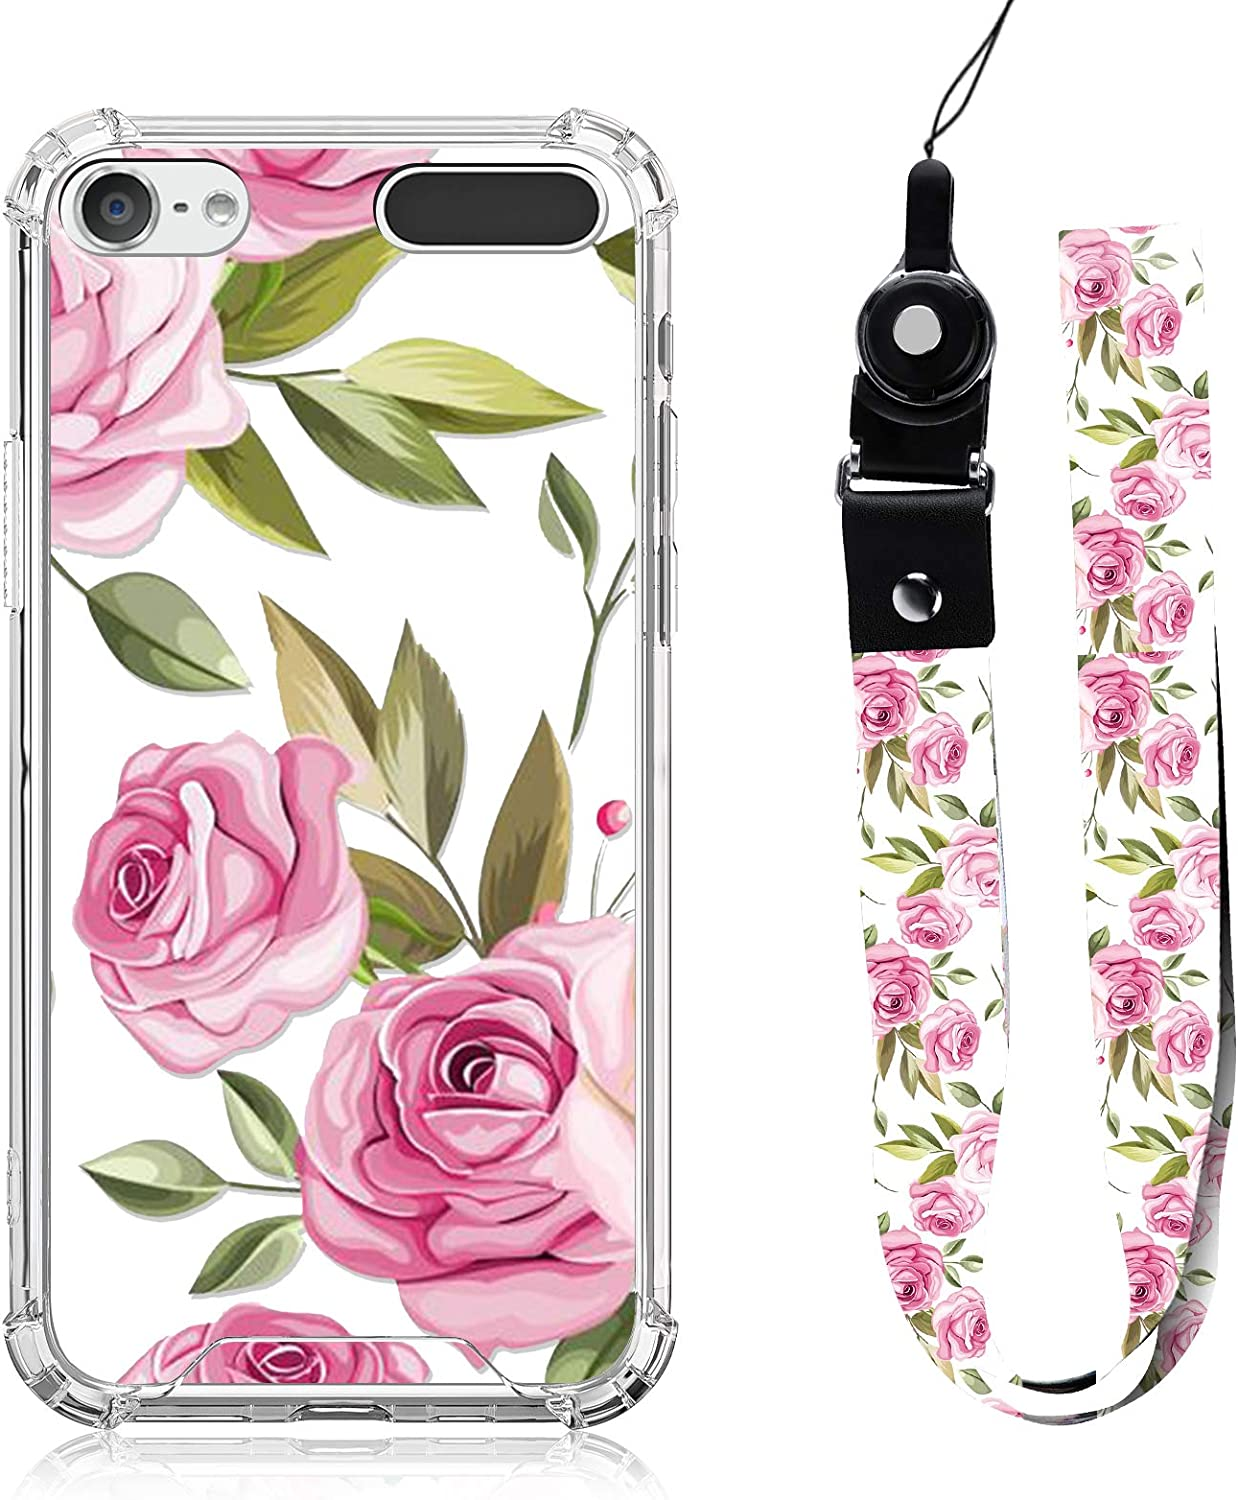 iPod Touch 5 6 7 Case Pink Rose Floral Design with Neck Strap Lanyard for Women Girls Protective Clear Bumper Case Cute Vintage Flower for iPod Touch 7th/ 6th/ 5th Gen MP3 Player Case Cover